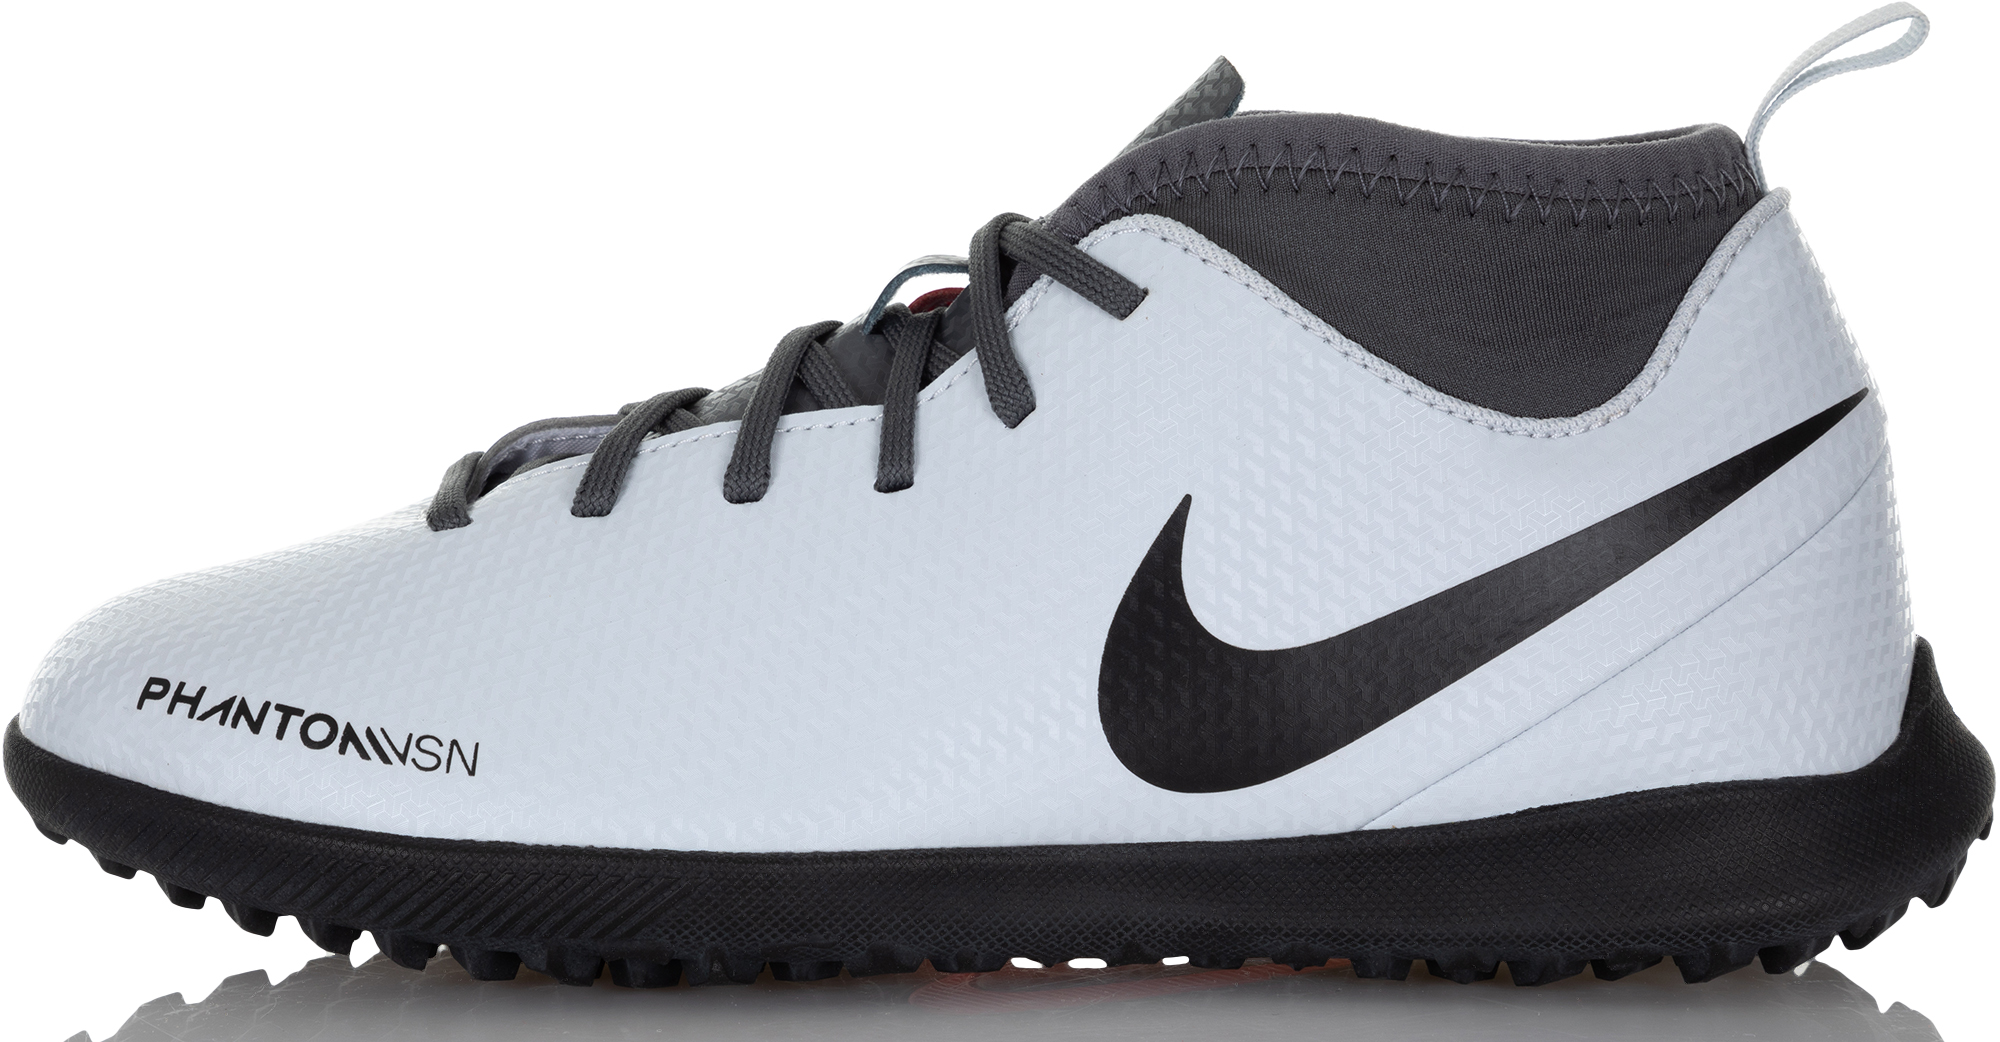 Nike Бутсы для мальчиков Nike Phantom Vision Club DF TF, размер 36,5 цена